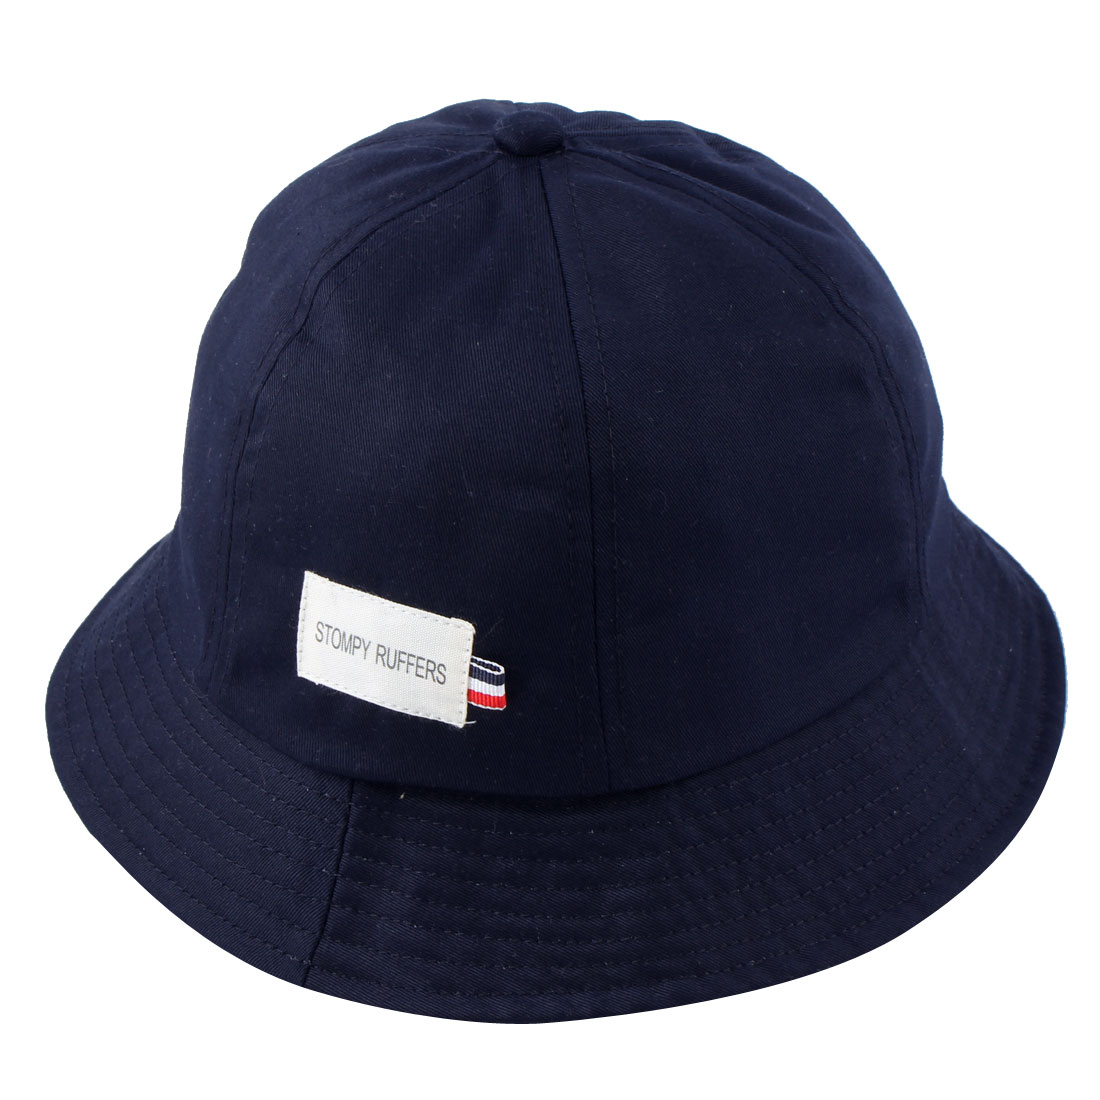 Fisherman Cotton Blends Outdoor Climbing Travelling Wide Brim Sun Protective Bucket Summer Cap Fishing Hat Navy Blue